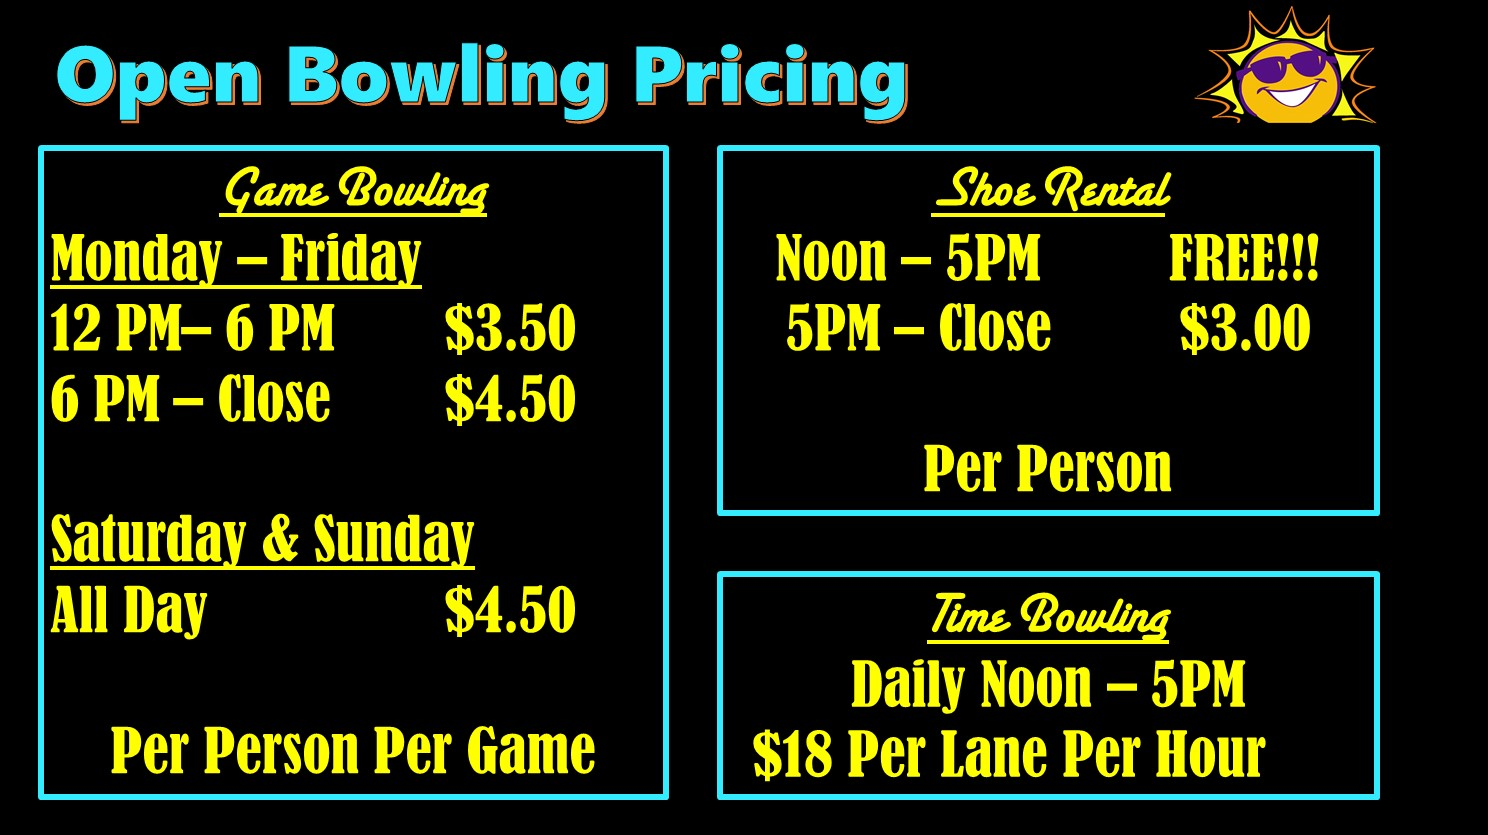 Open Bowling Prices Summer 2019 at Princess Lanes Bowling Center